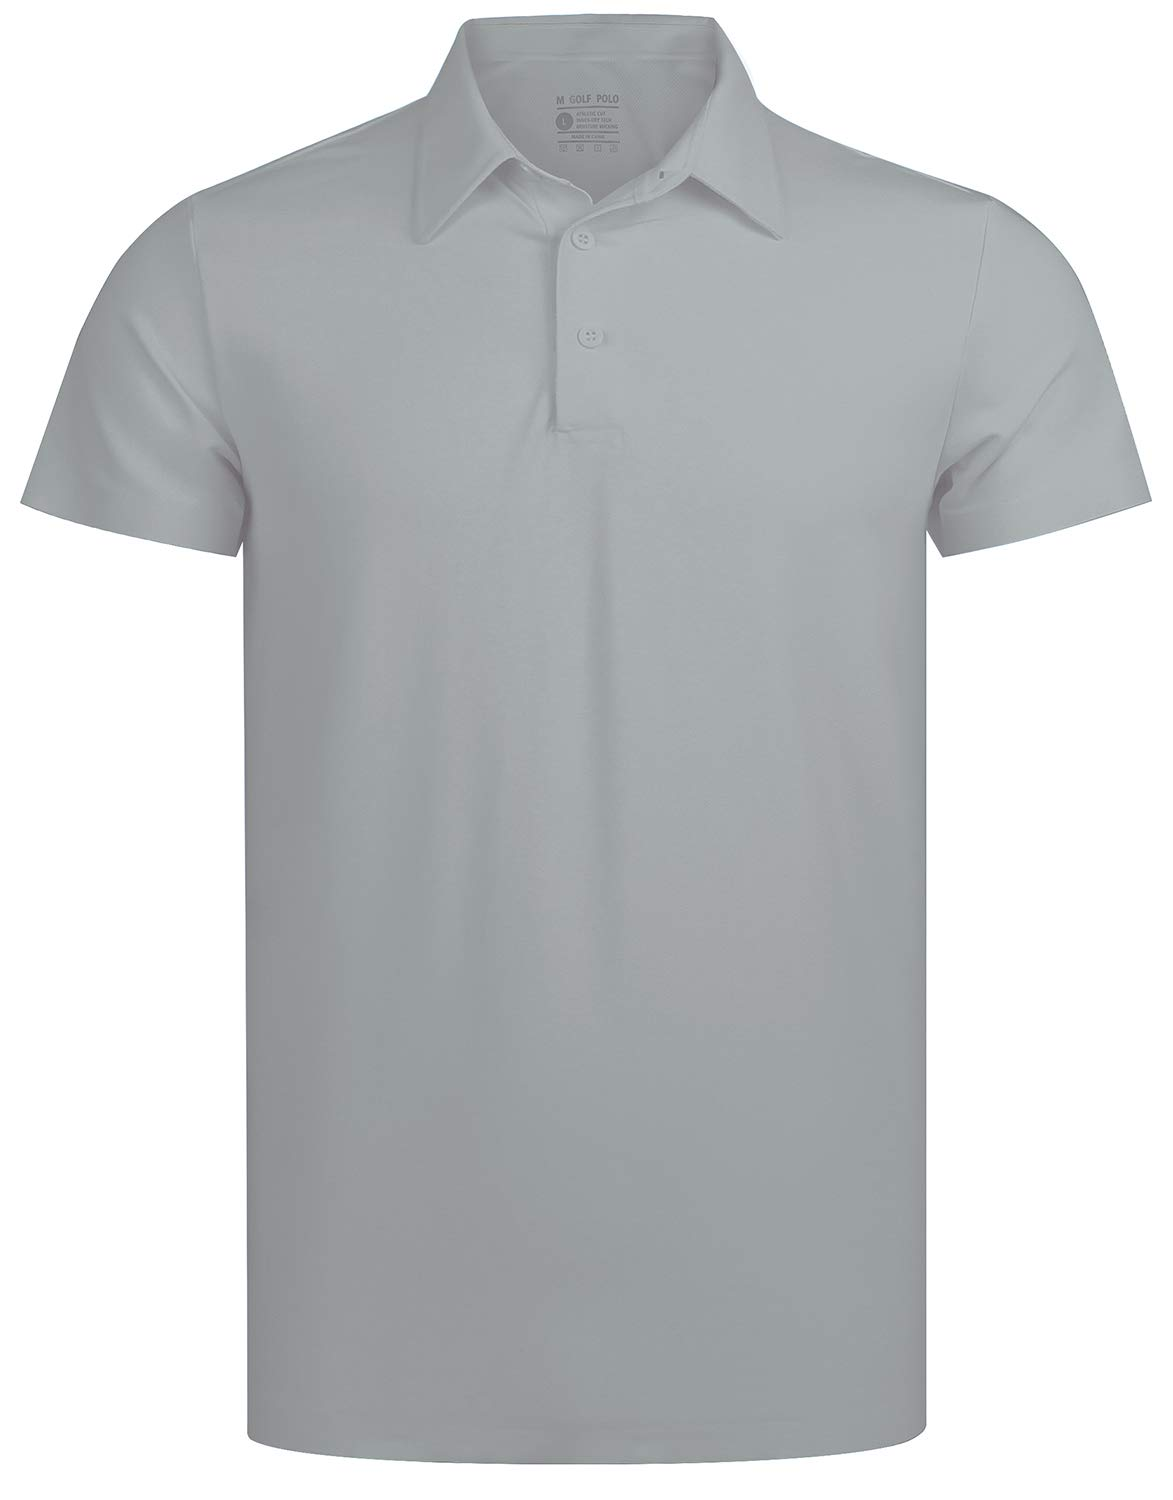 Seamless Golf Shirts for Men | Tennis Solid Polo Shirt Quick-Dry Slim Fit Collared T-Shirt